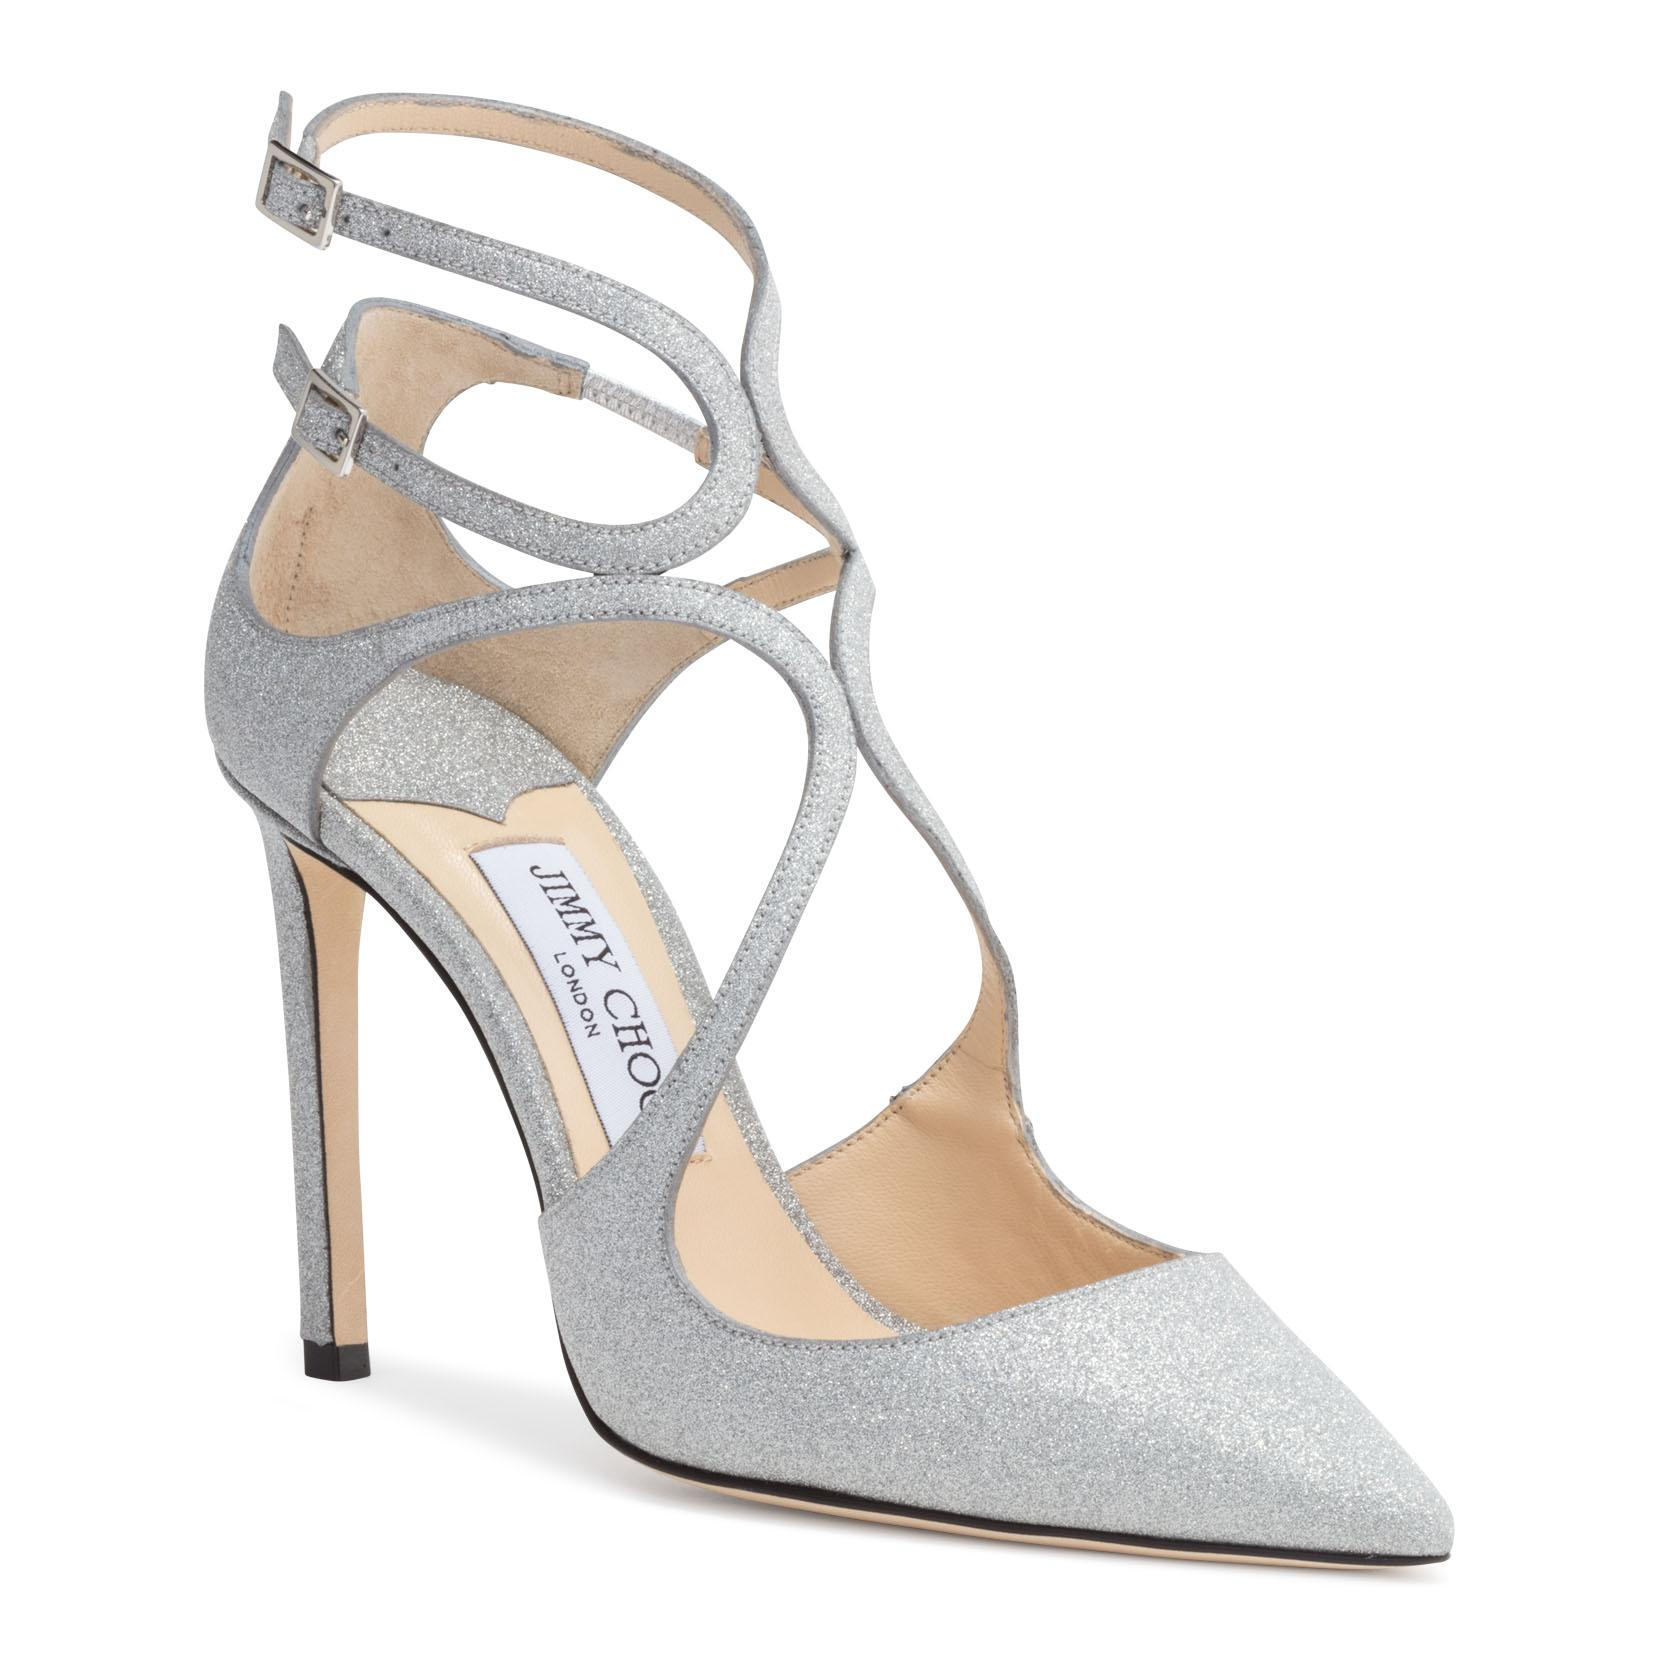 801a5ffe1a74 Jimmy Choo Lancer 100 Silver Glitter Pumps In Metallic. Savannahs